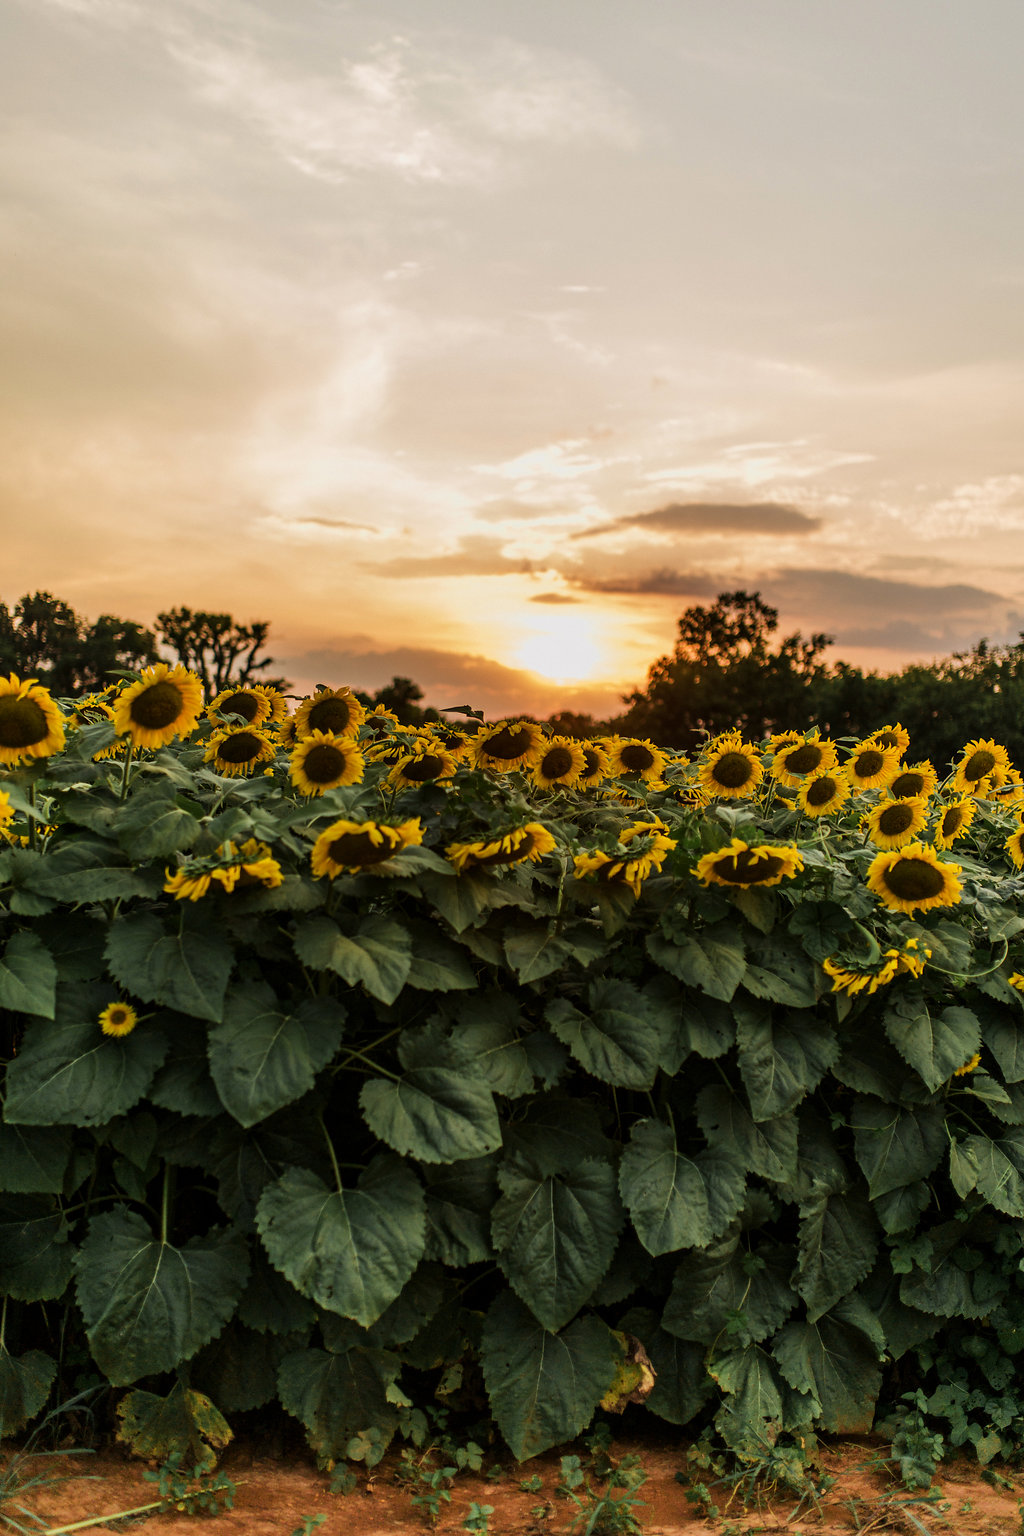 Sunflower-Maternity-Nashville-Tennessee-Field-Batey-Farms-9